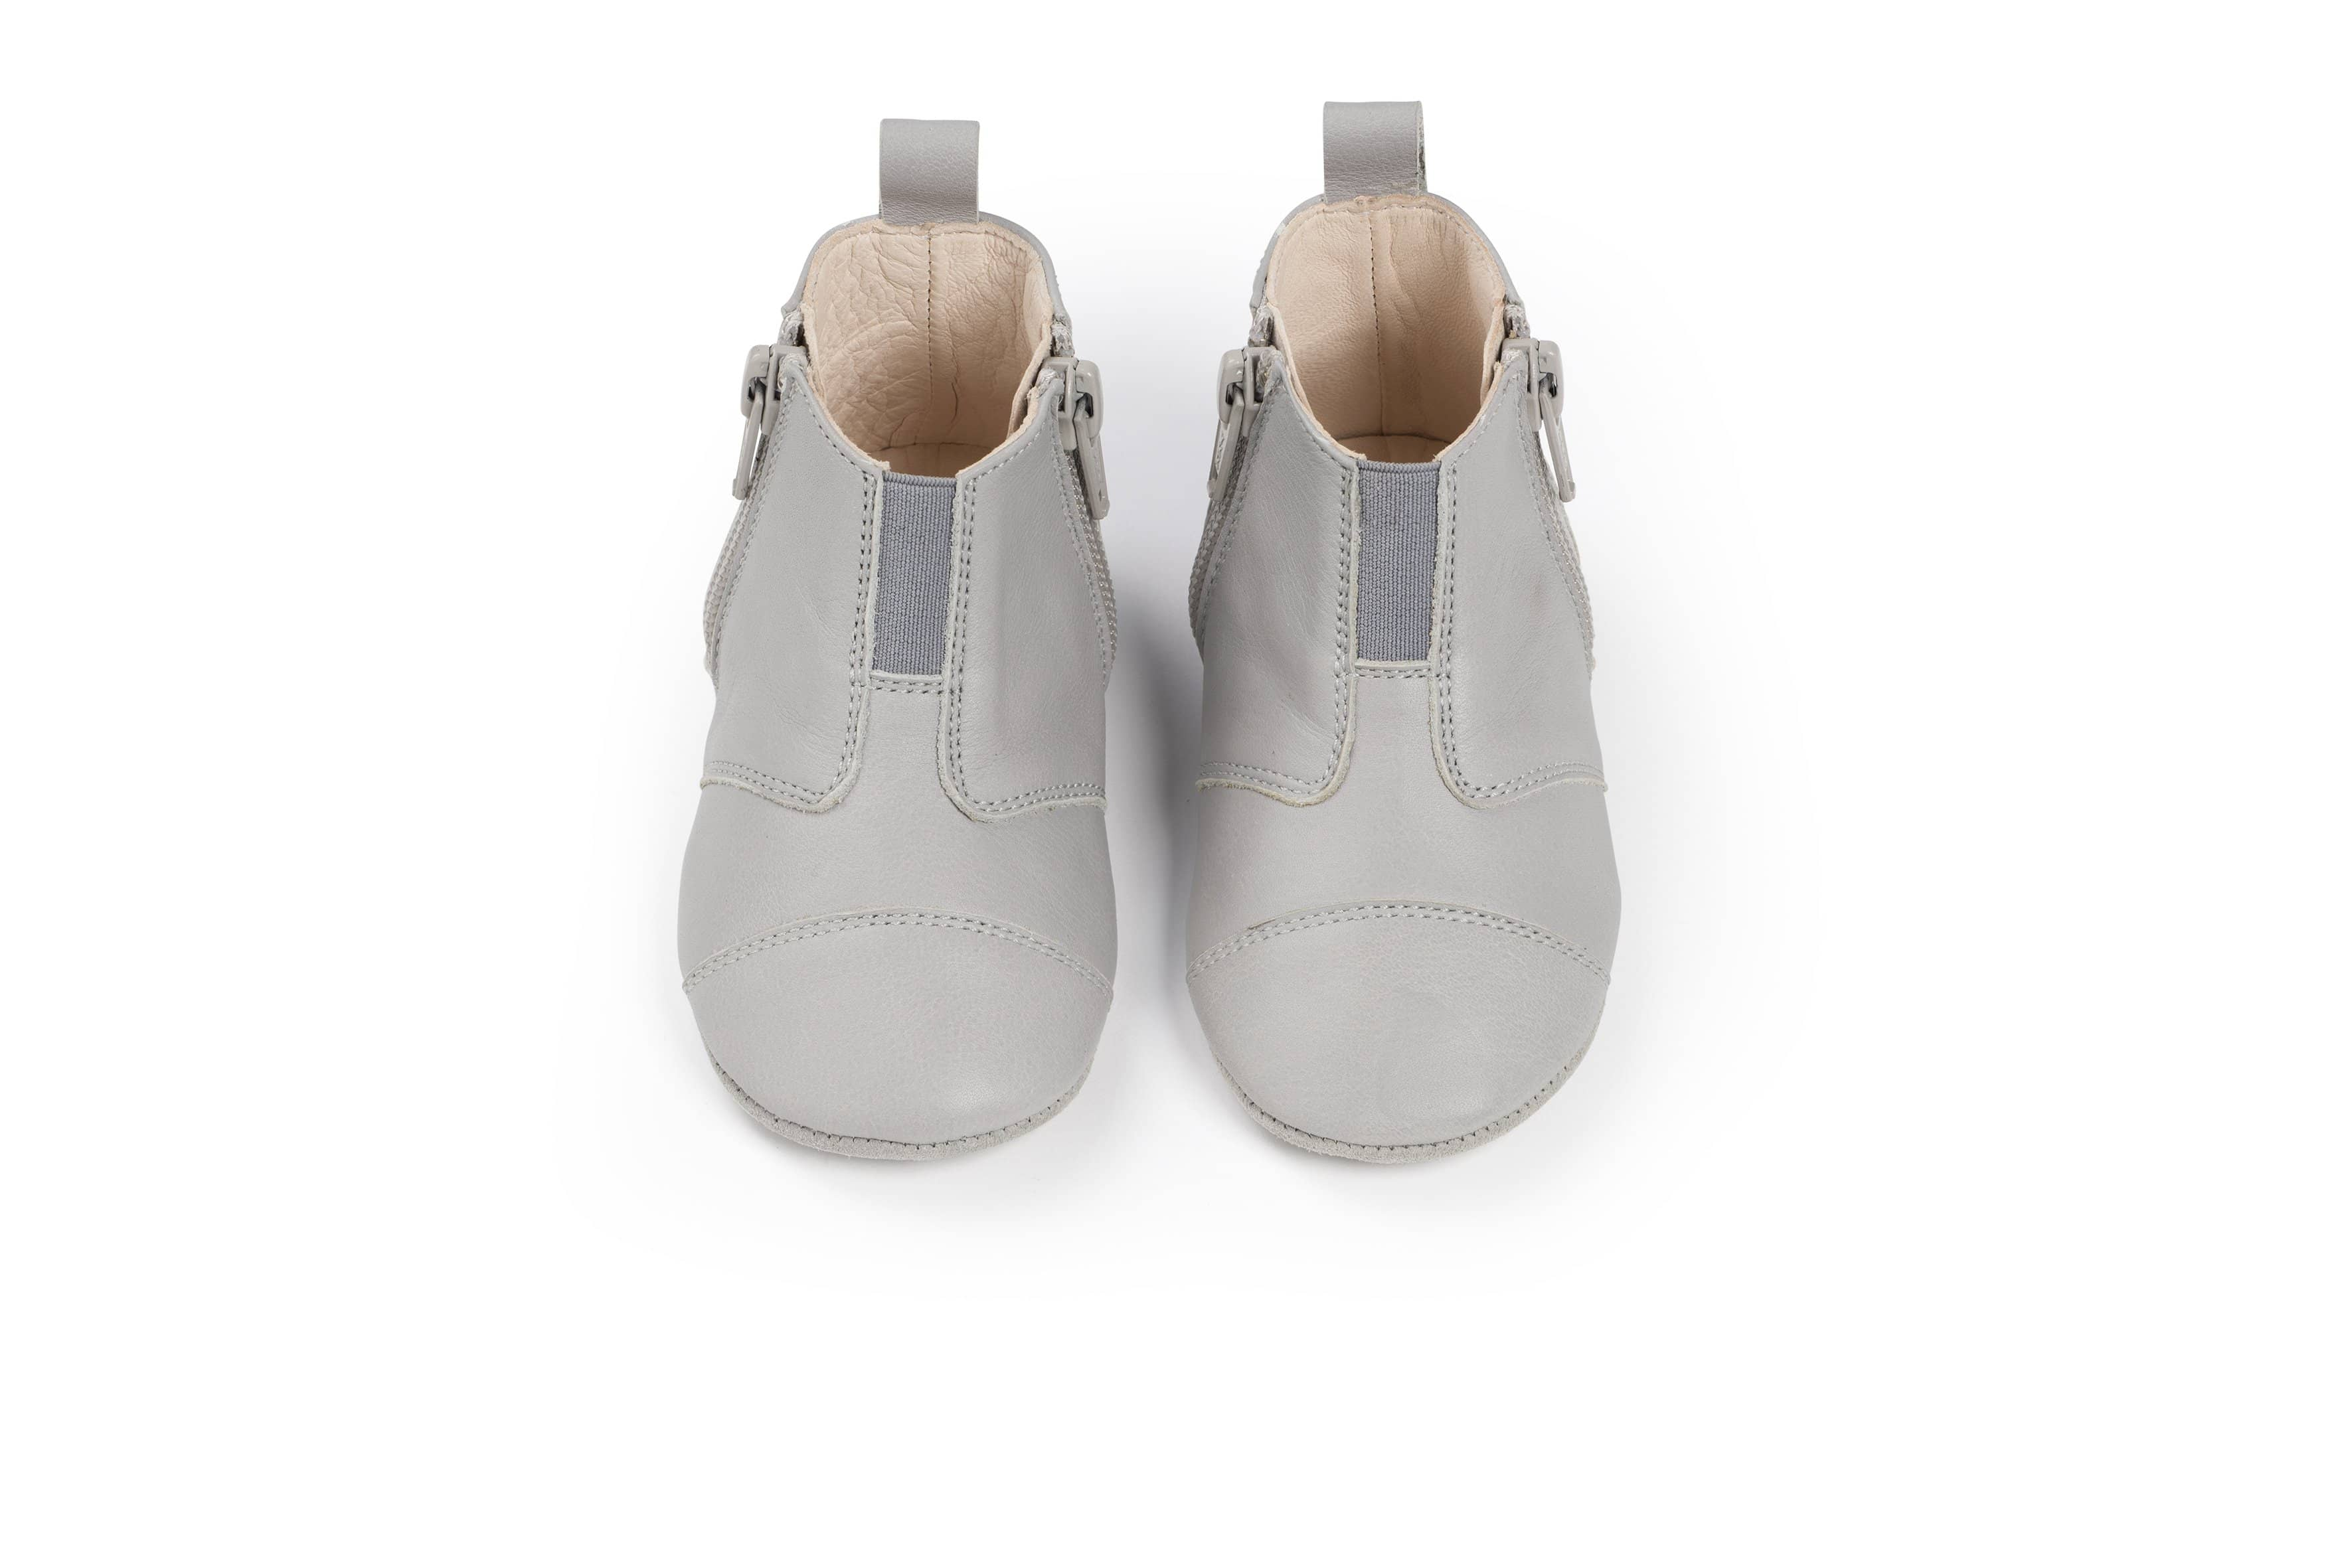 Dusq First Steps Shoes - Leather Cloud Grey  - Hola BB